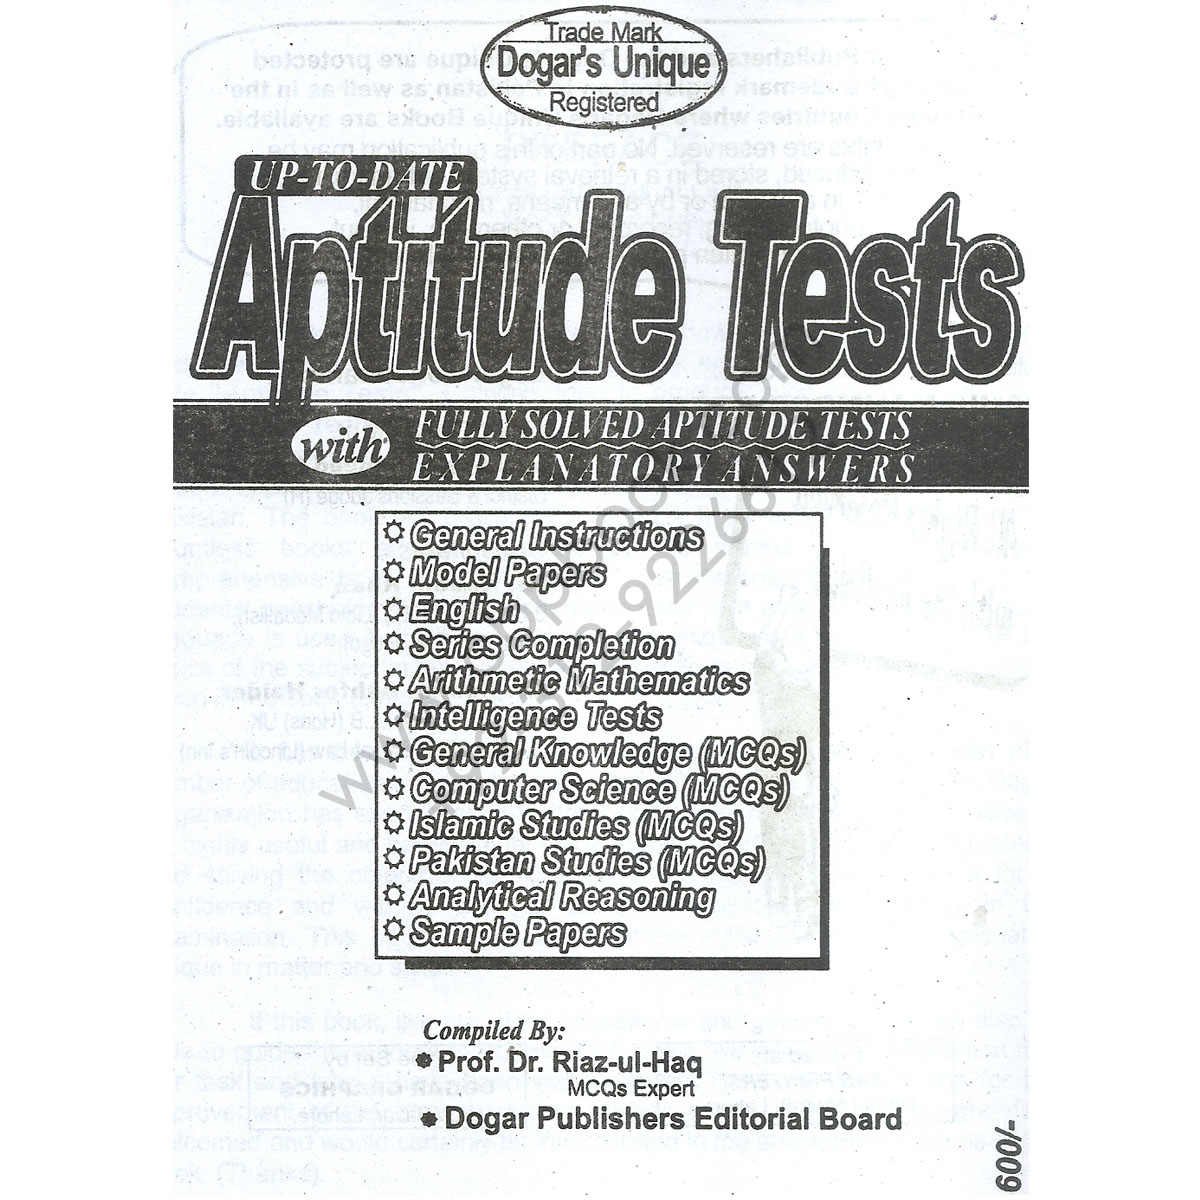 Dogar's Unique Aptitude Tests BCAT By Prof. Dr. Riaz-ul